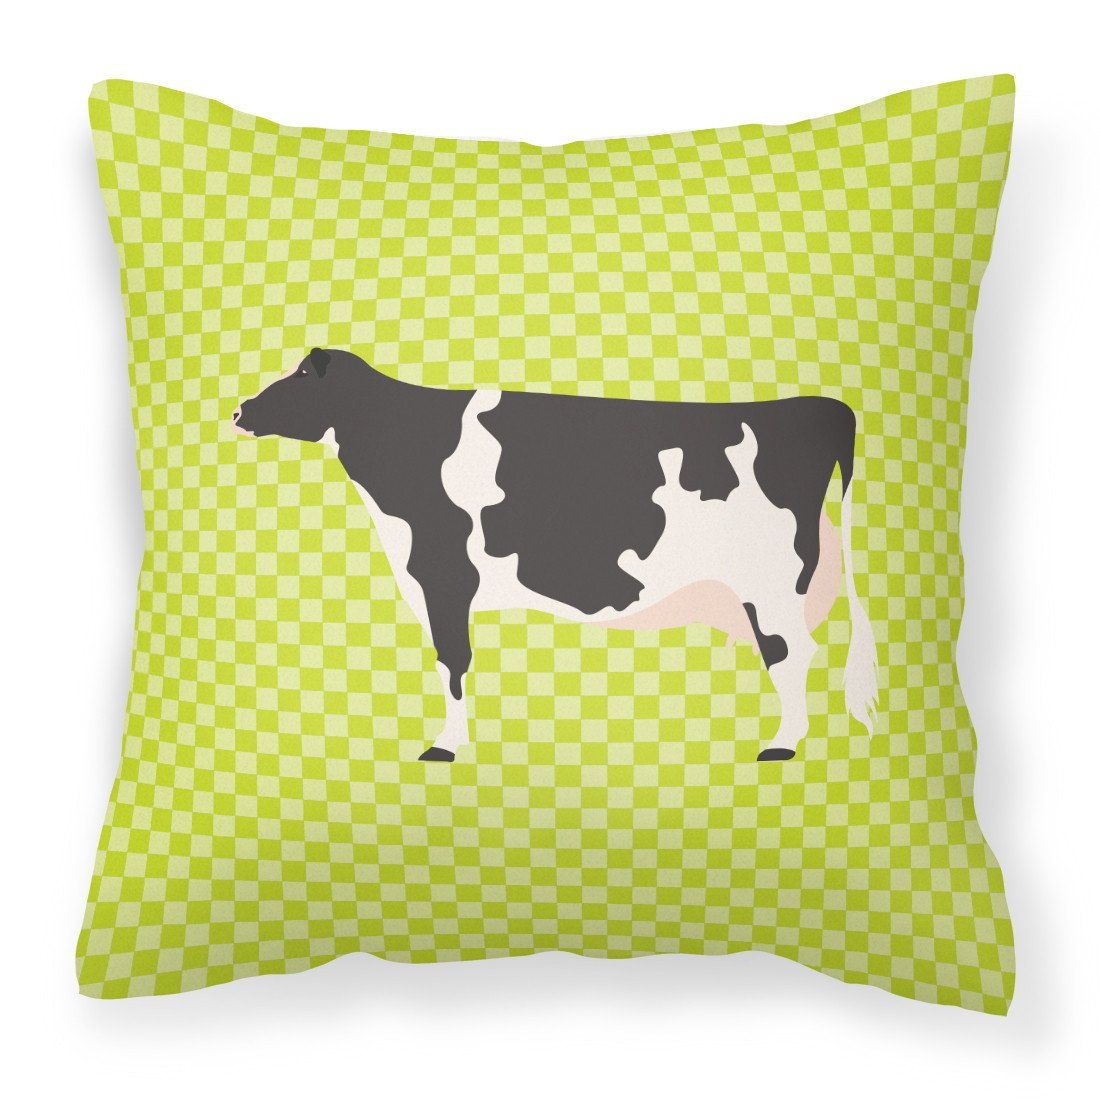 Holstein Cow Green Fabric Decorative Pillow BB7648PW1818 by Caroline's Treasures